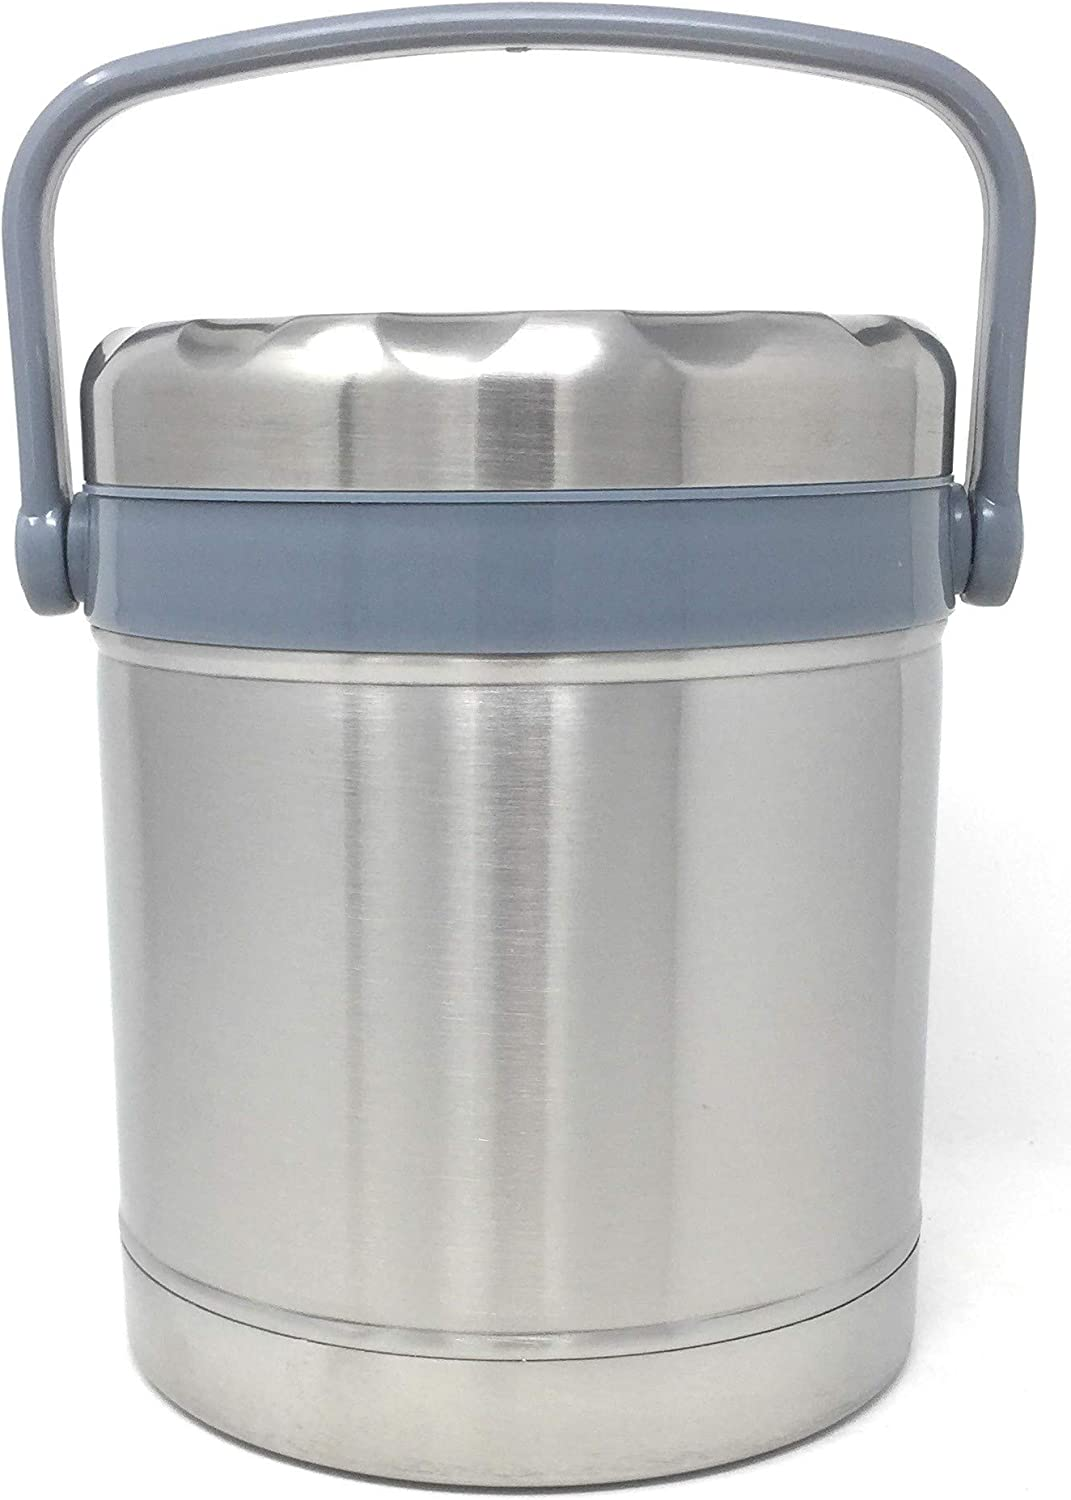 Artek Stainless Steel Insulated Food Container Hot Cold with Handle 40 ounce